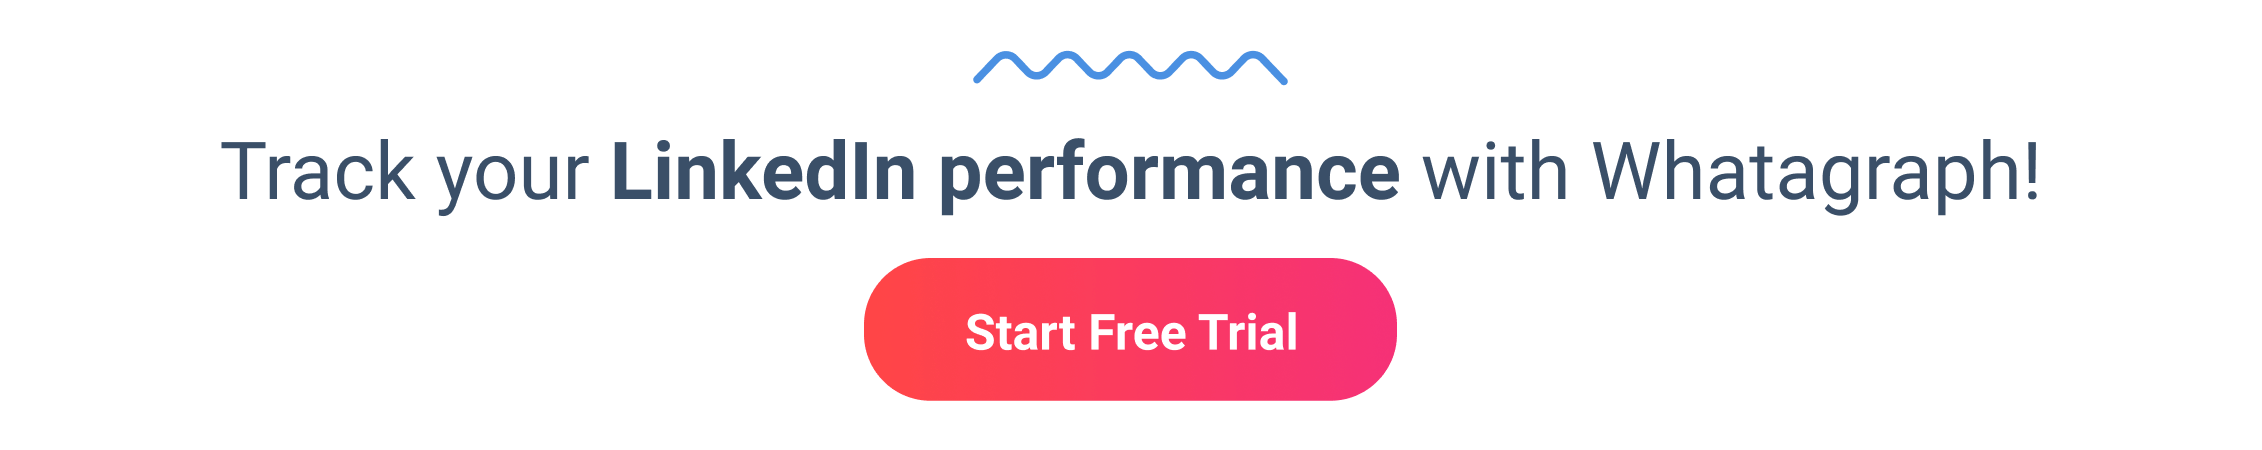 Start free trial with Whatagraph